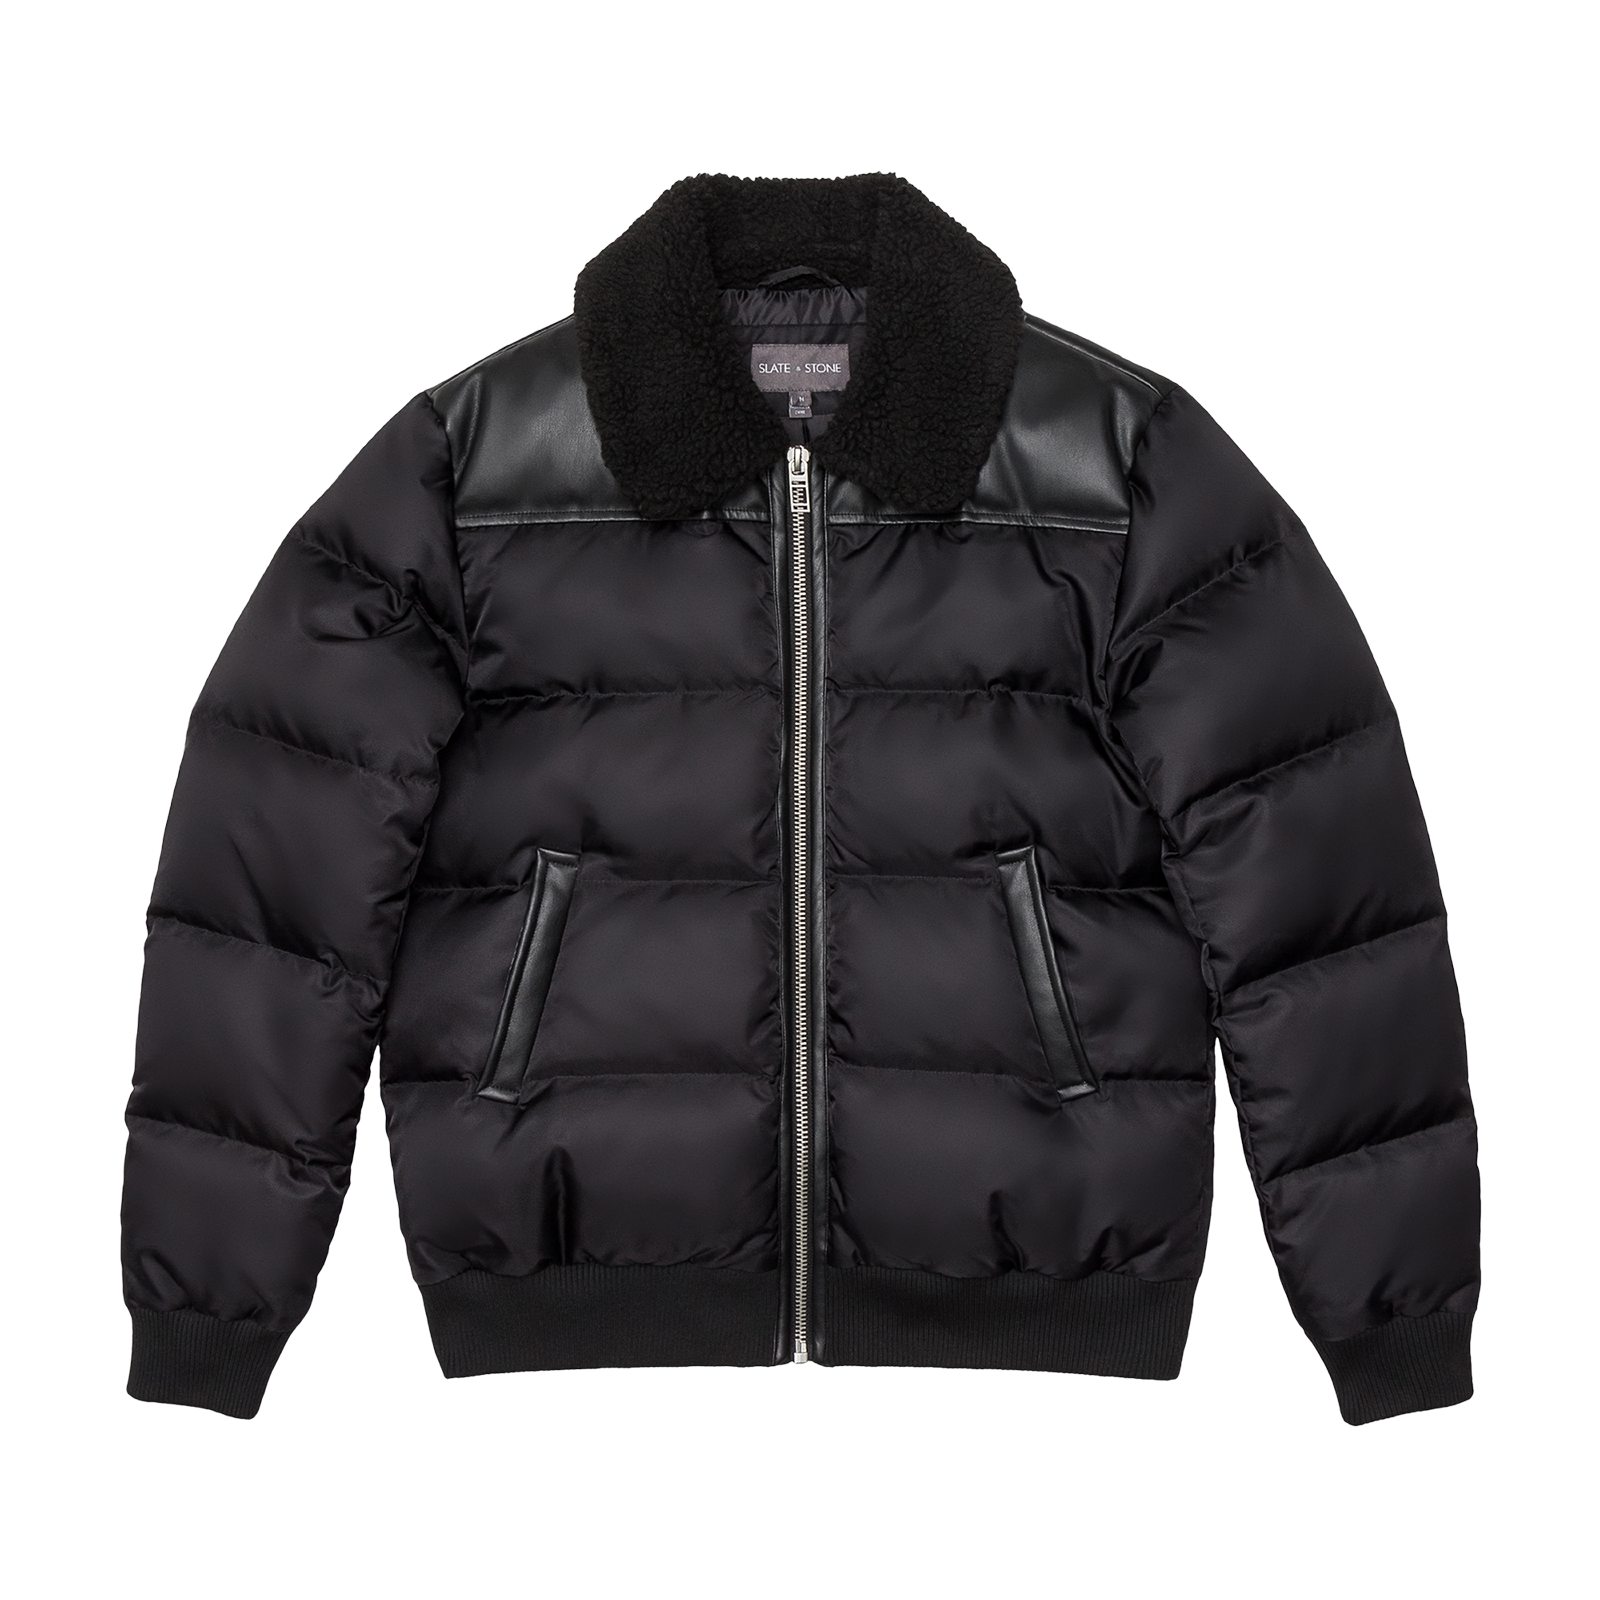 Puffer jacket product photo